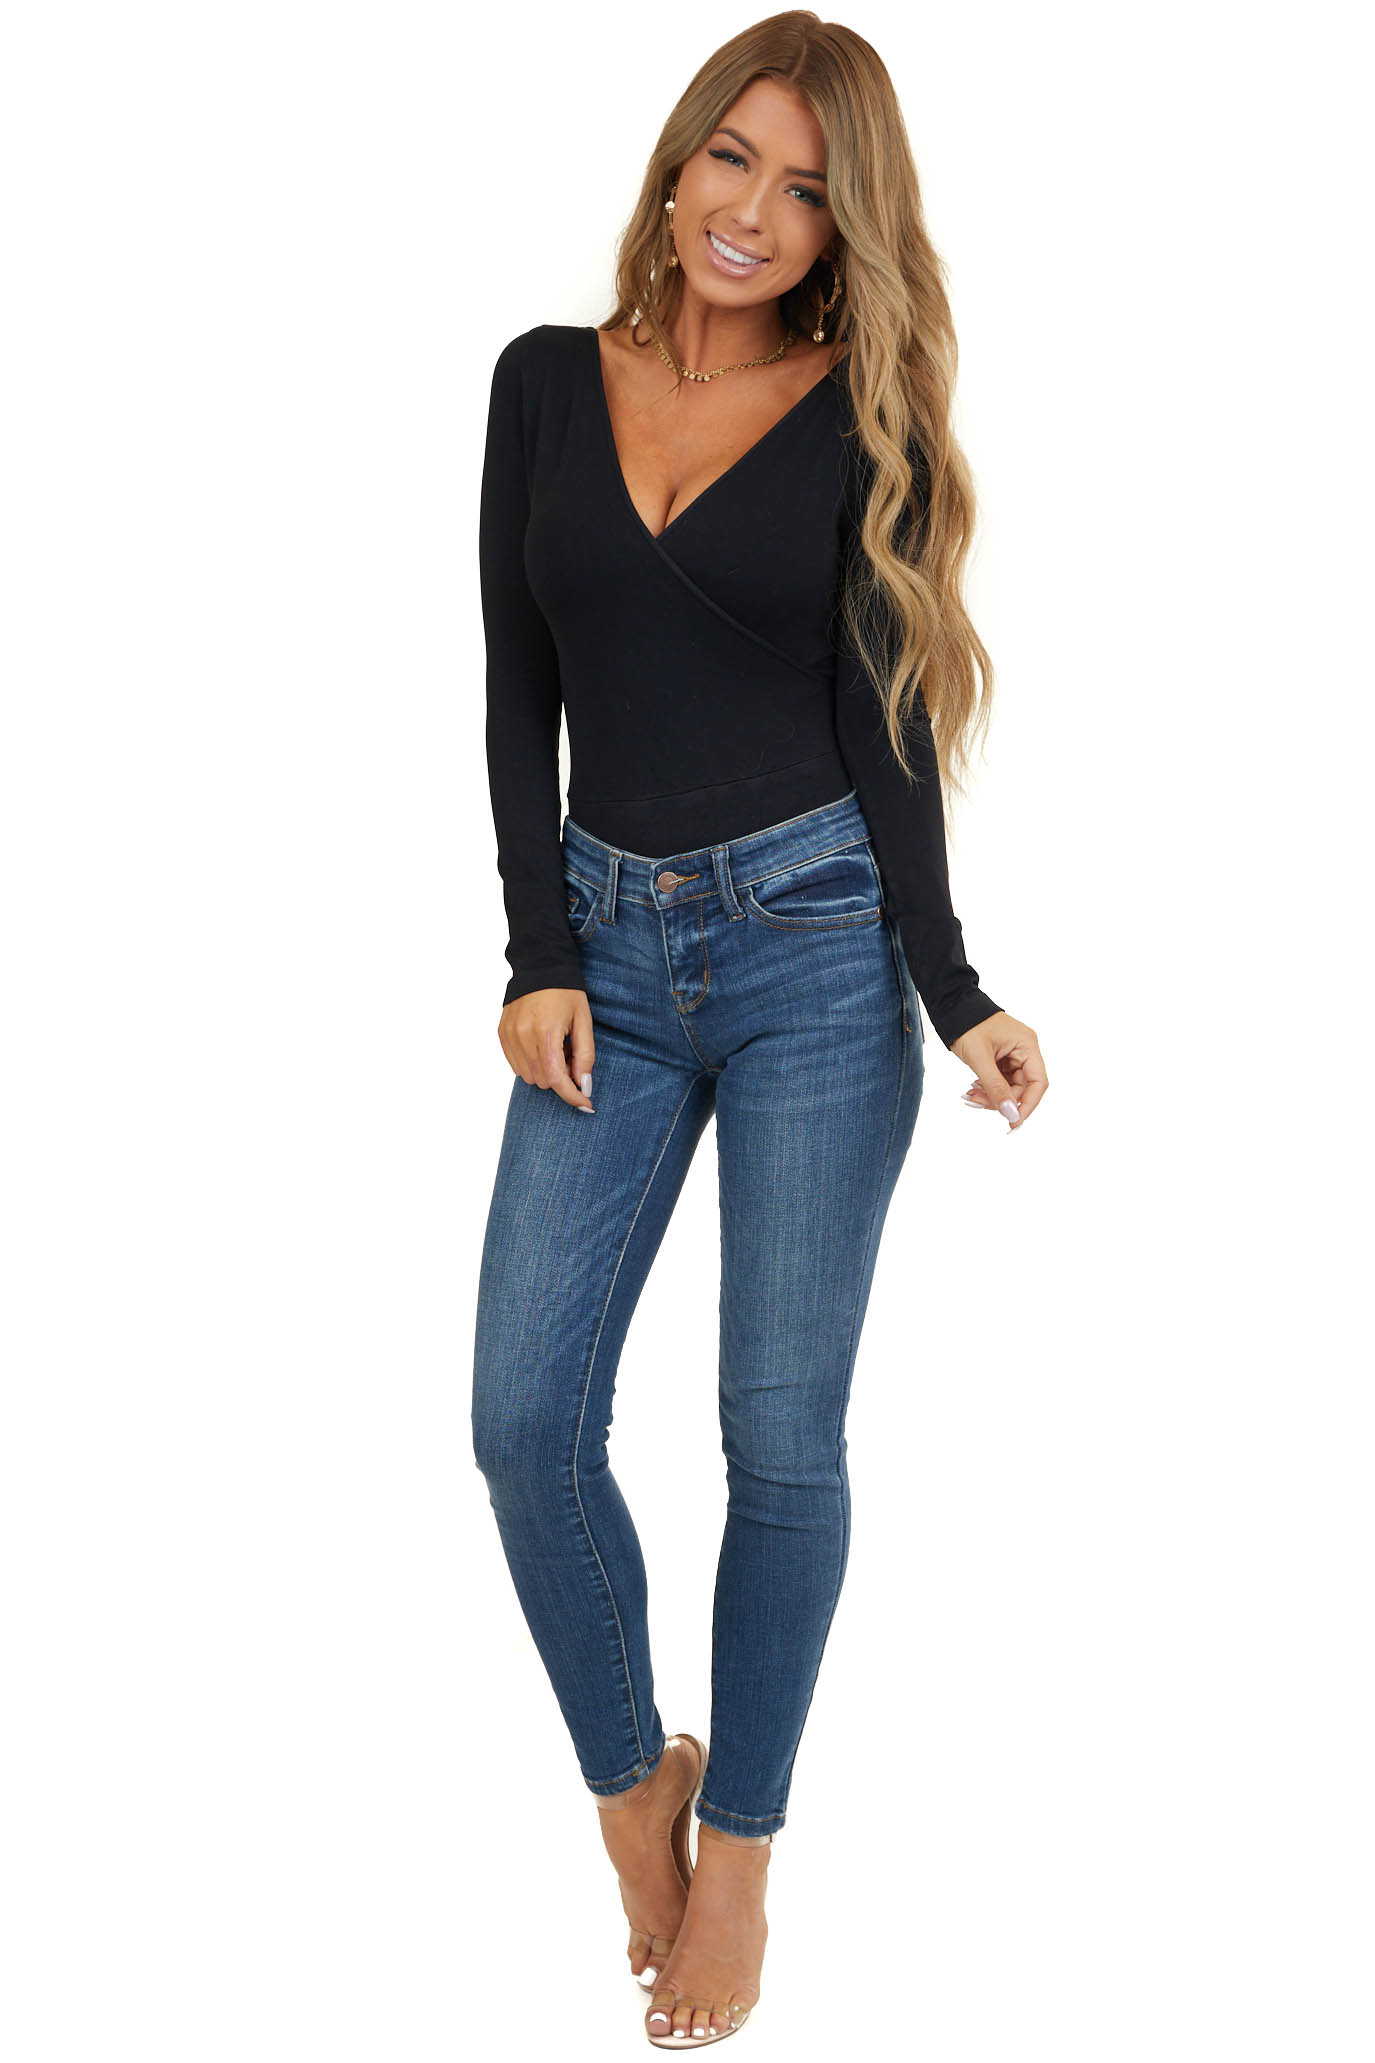 Black Surplice Knit Bodysuit with Long Sleeves